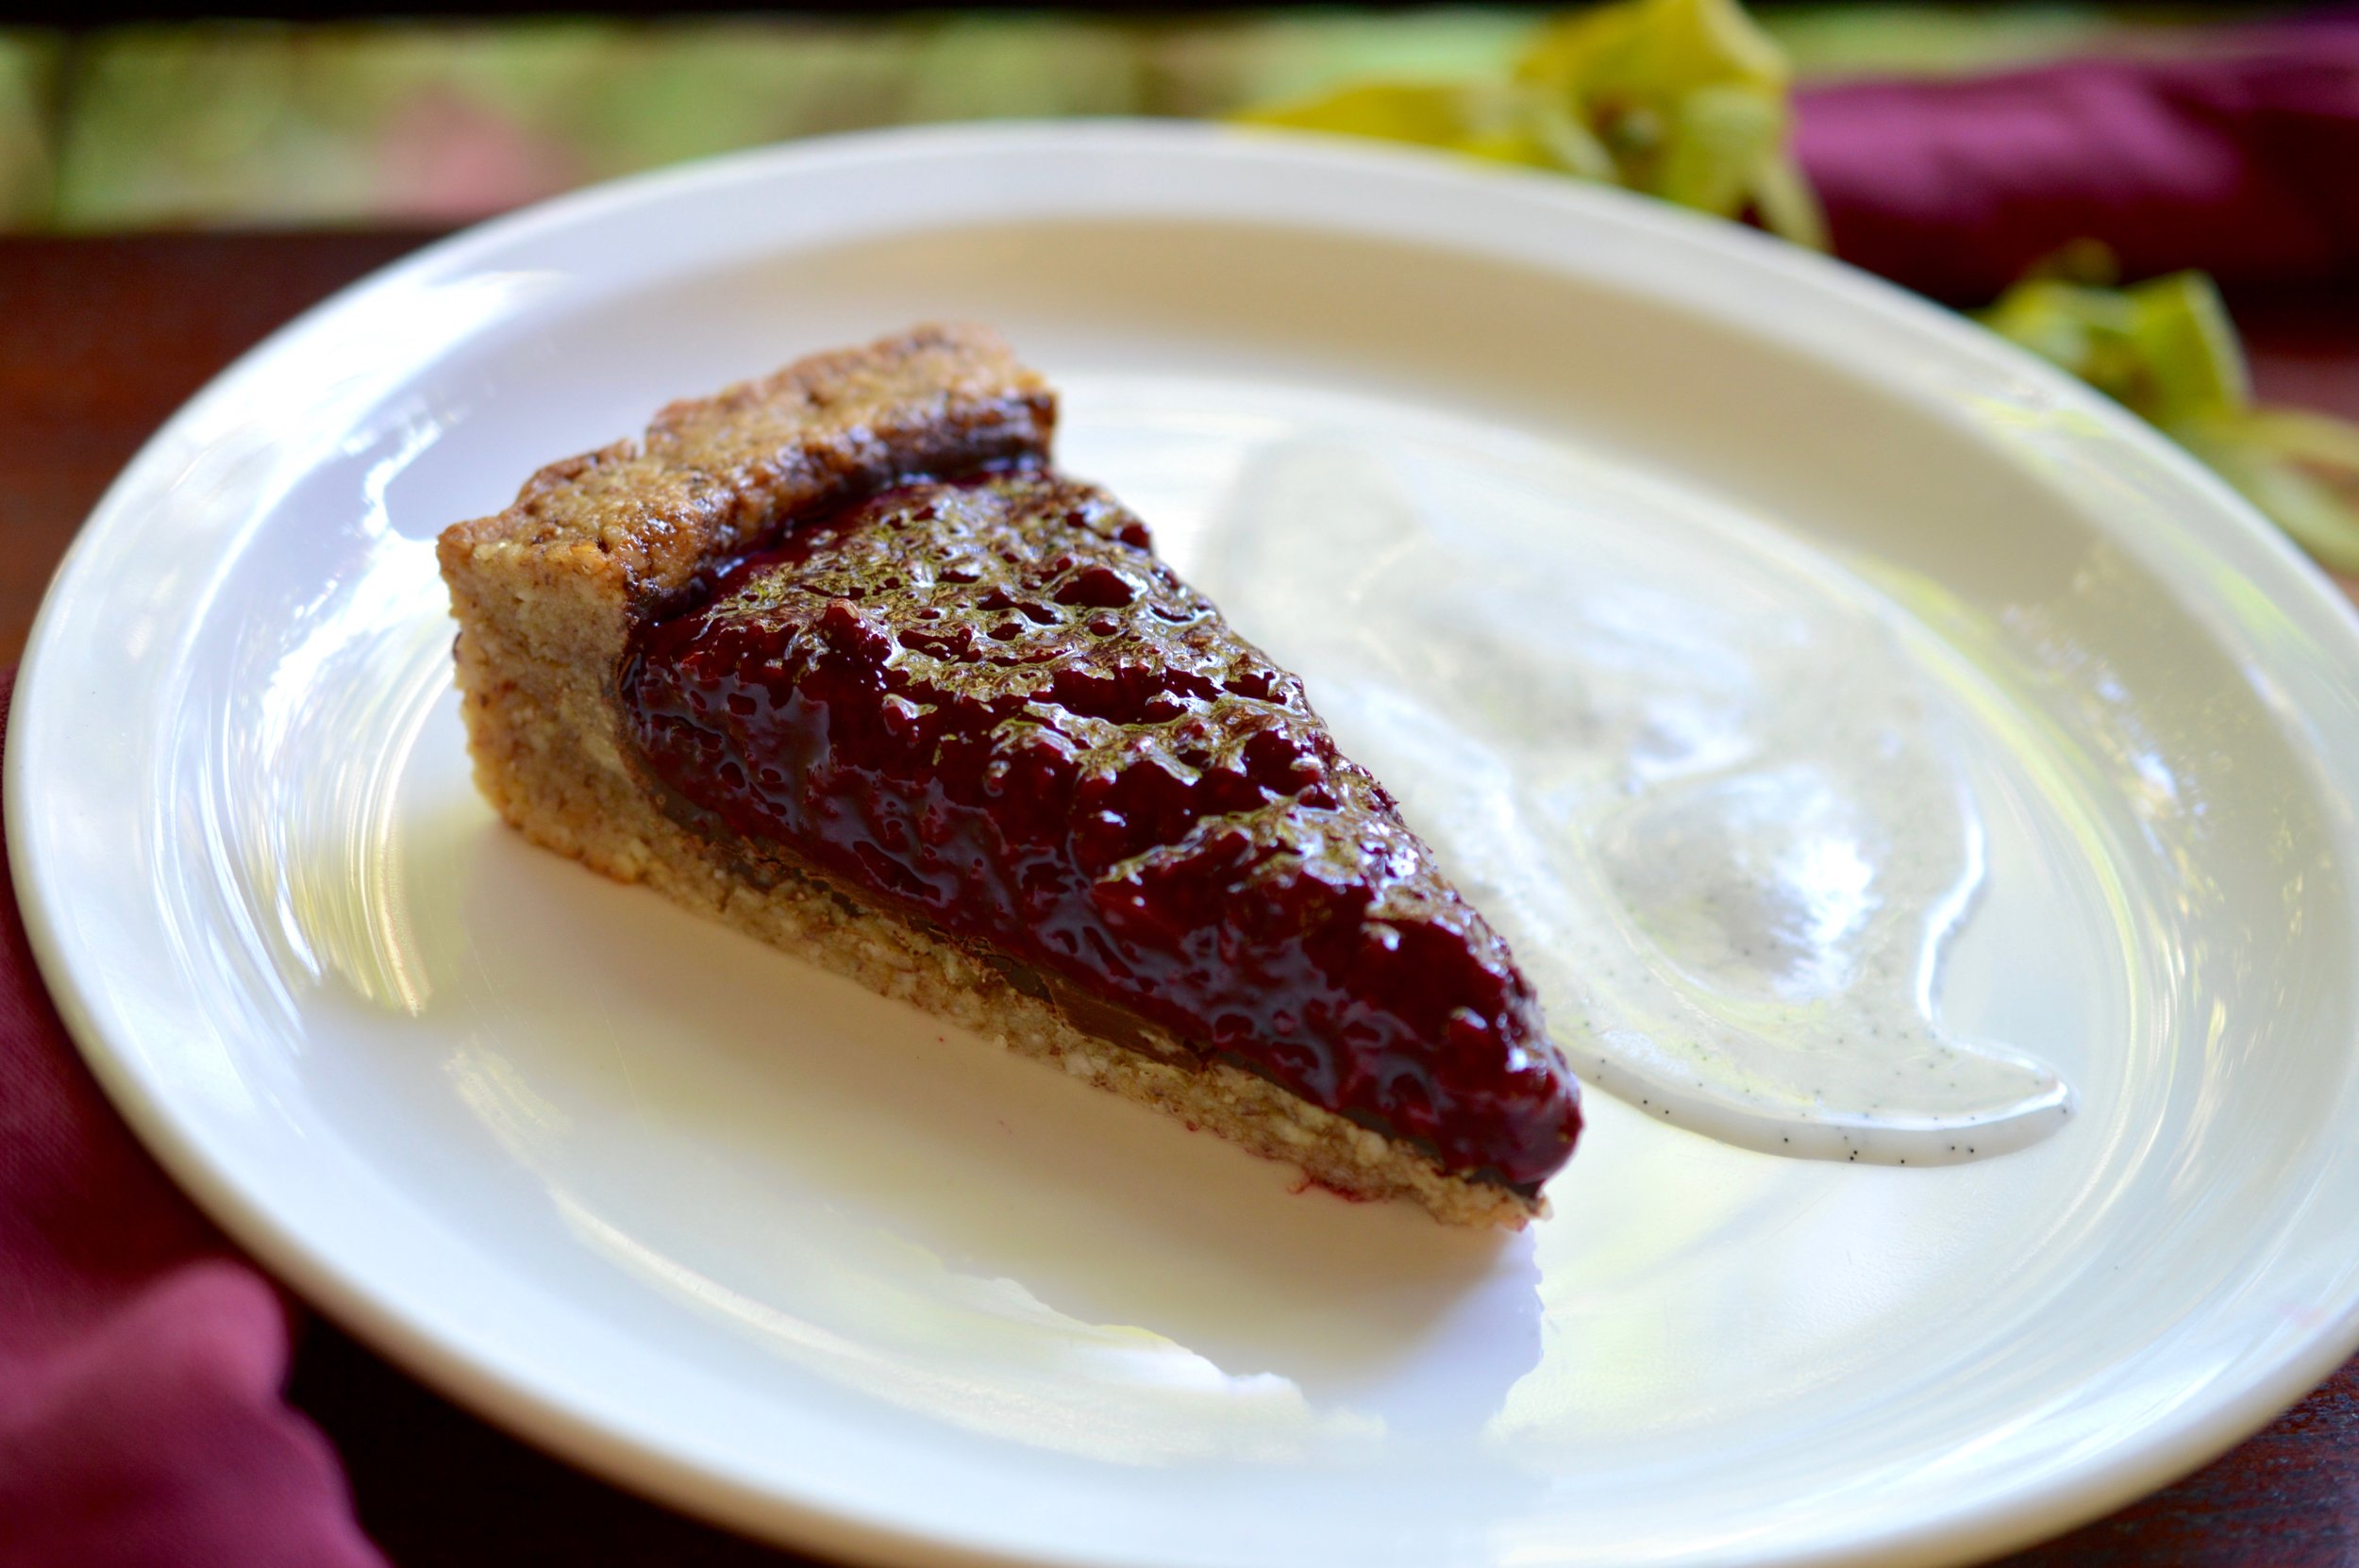 Blackberry almondine tart.jpg